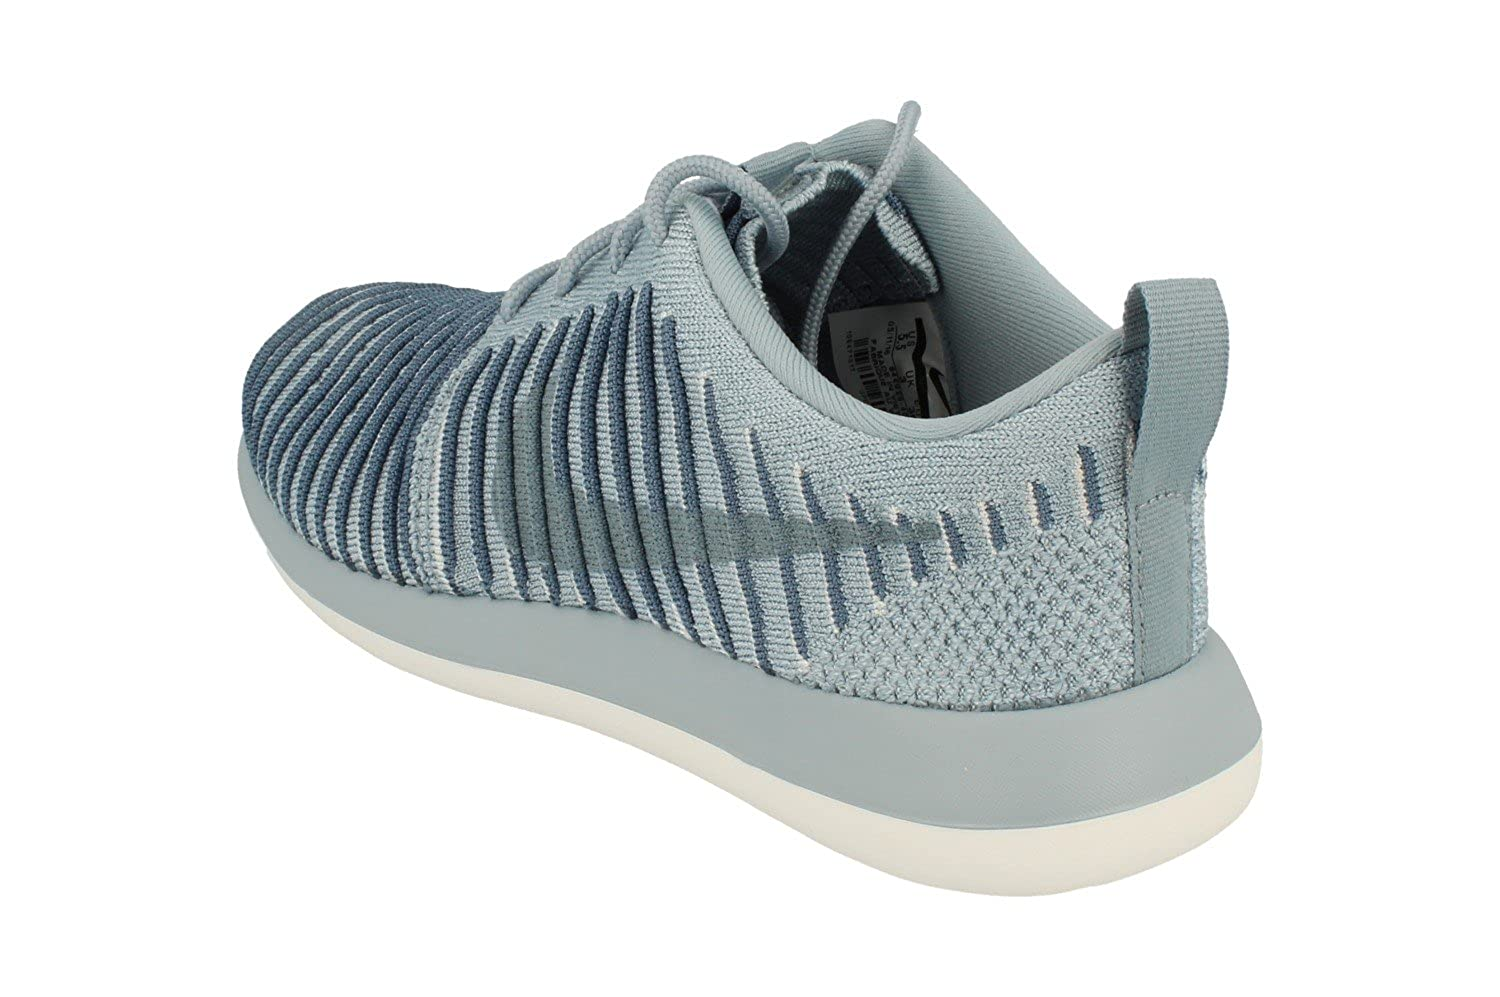 9d22a495b49 Nike Femmes Roshe Two Flyknit Running 844929 Sneakers Chaussures (UK 4 US  6.5 EU 37.5